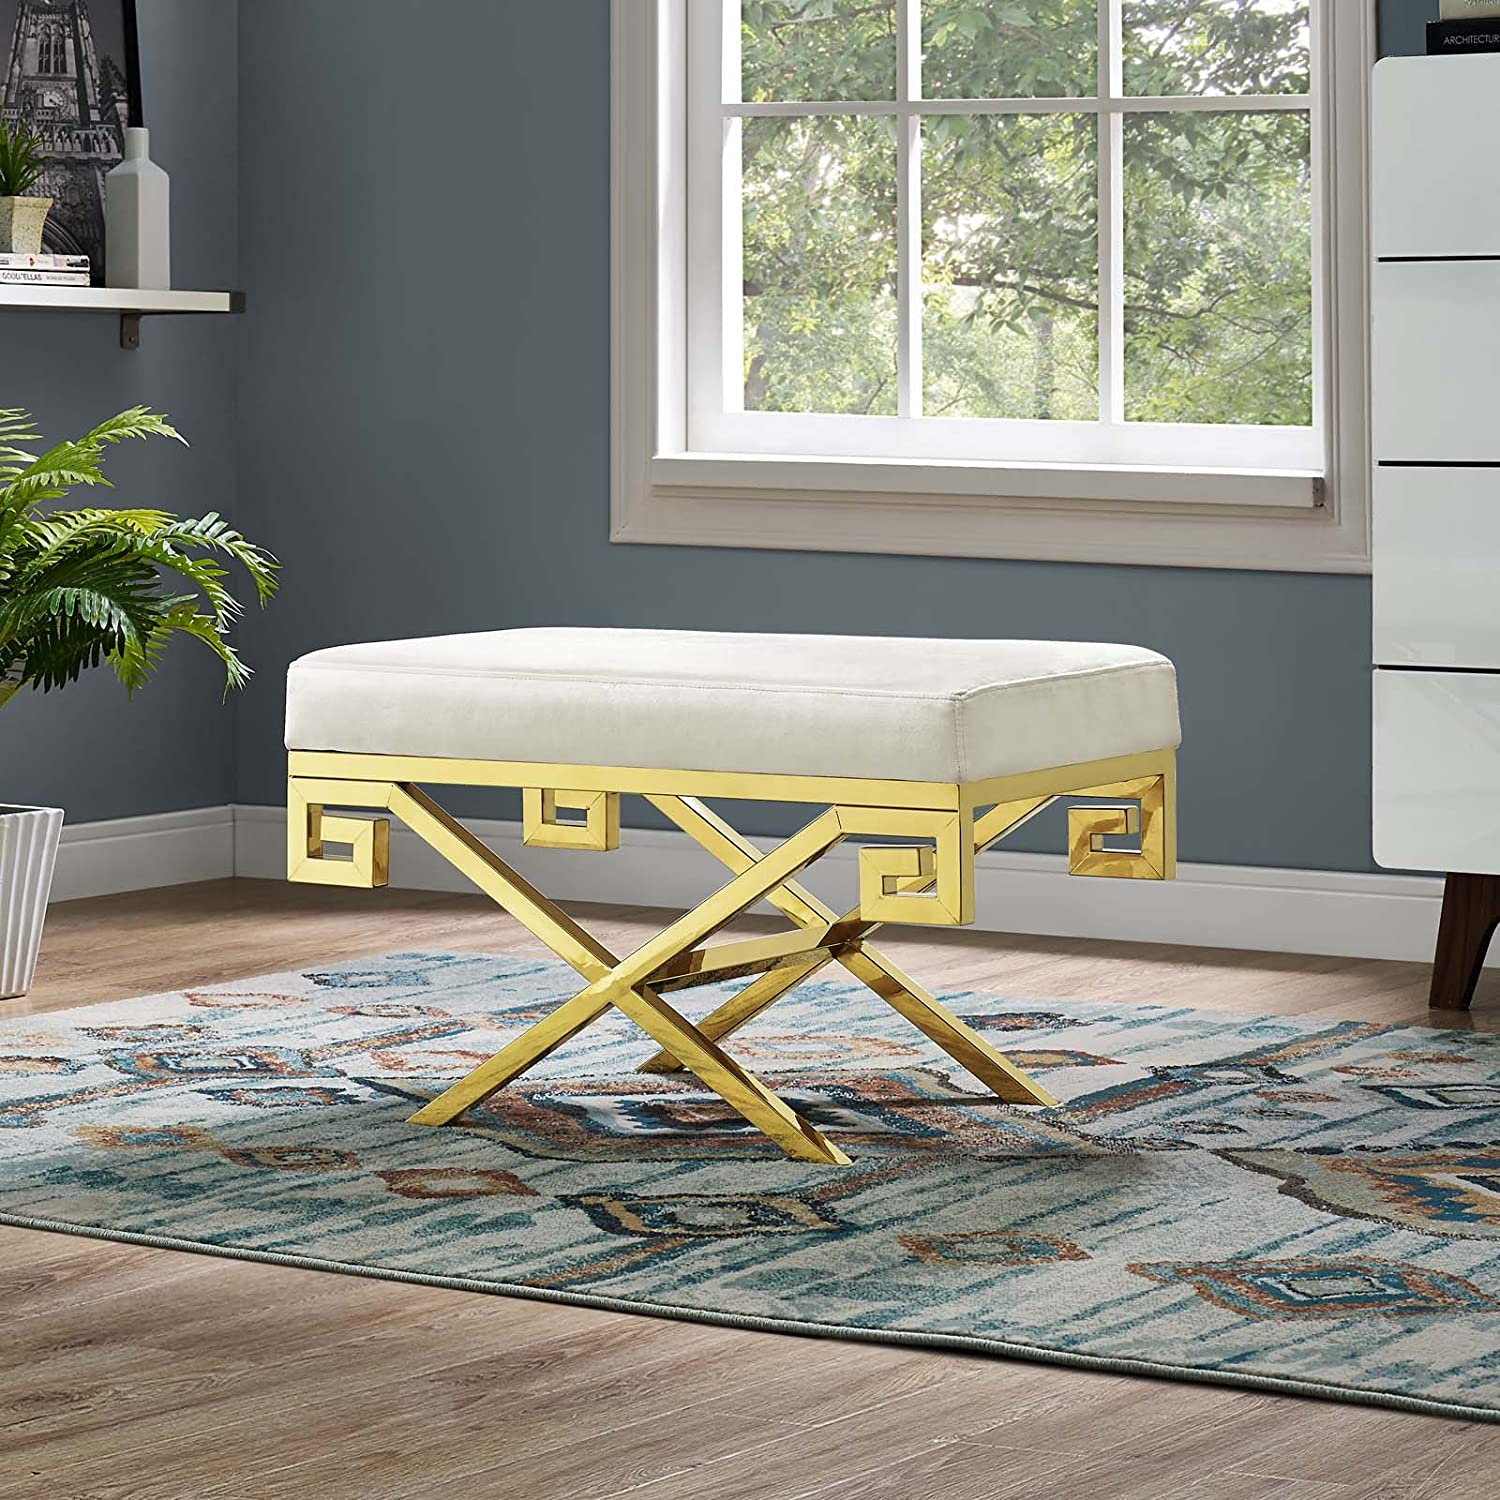 Modway Rove Greek Key X-Base Entryway Modern Bench With Velvet Upholstery in Gold Ivory